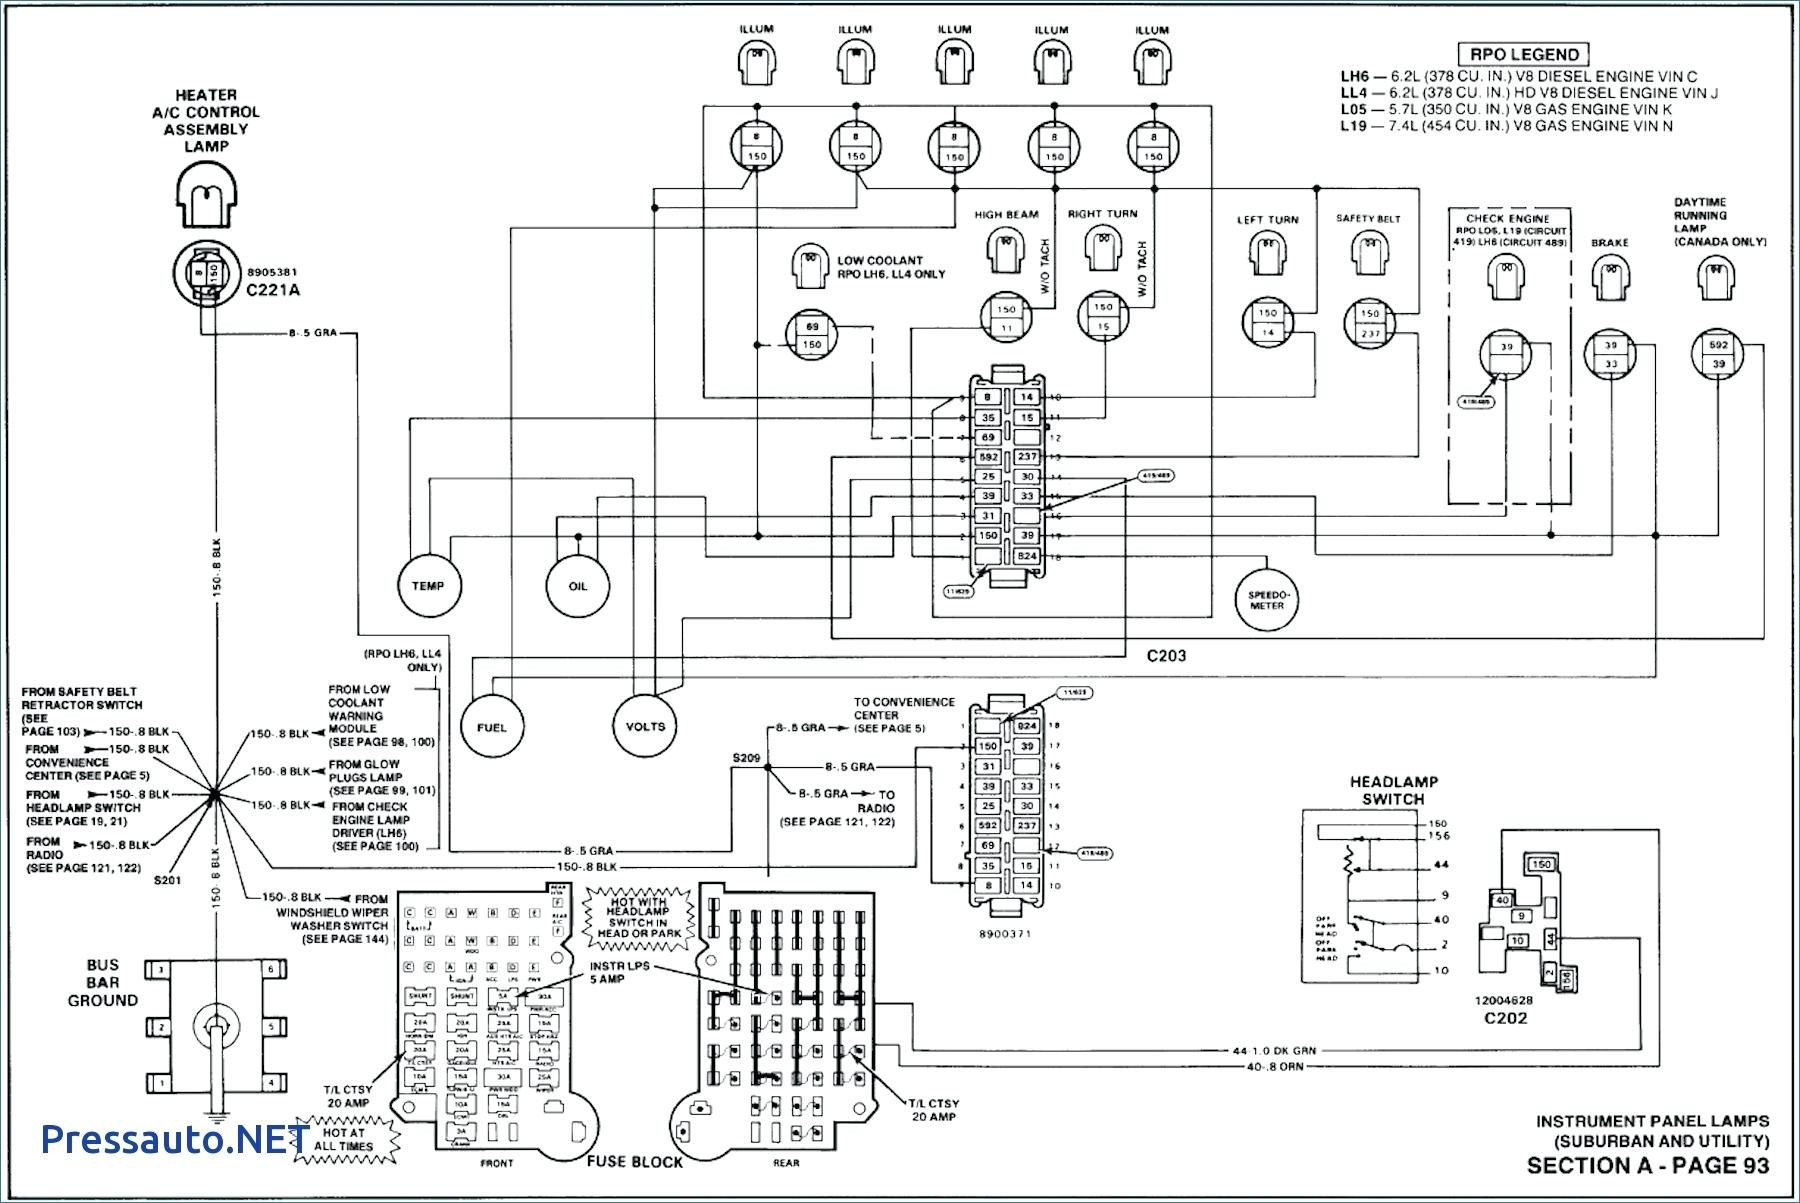 Atwood Rv Furnace Thermostat Wiring   Wiring Diagram - Atwood Furnace Wiring Diagram